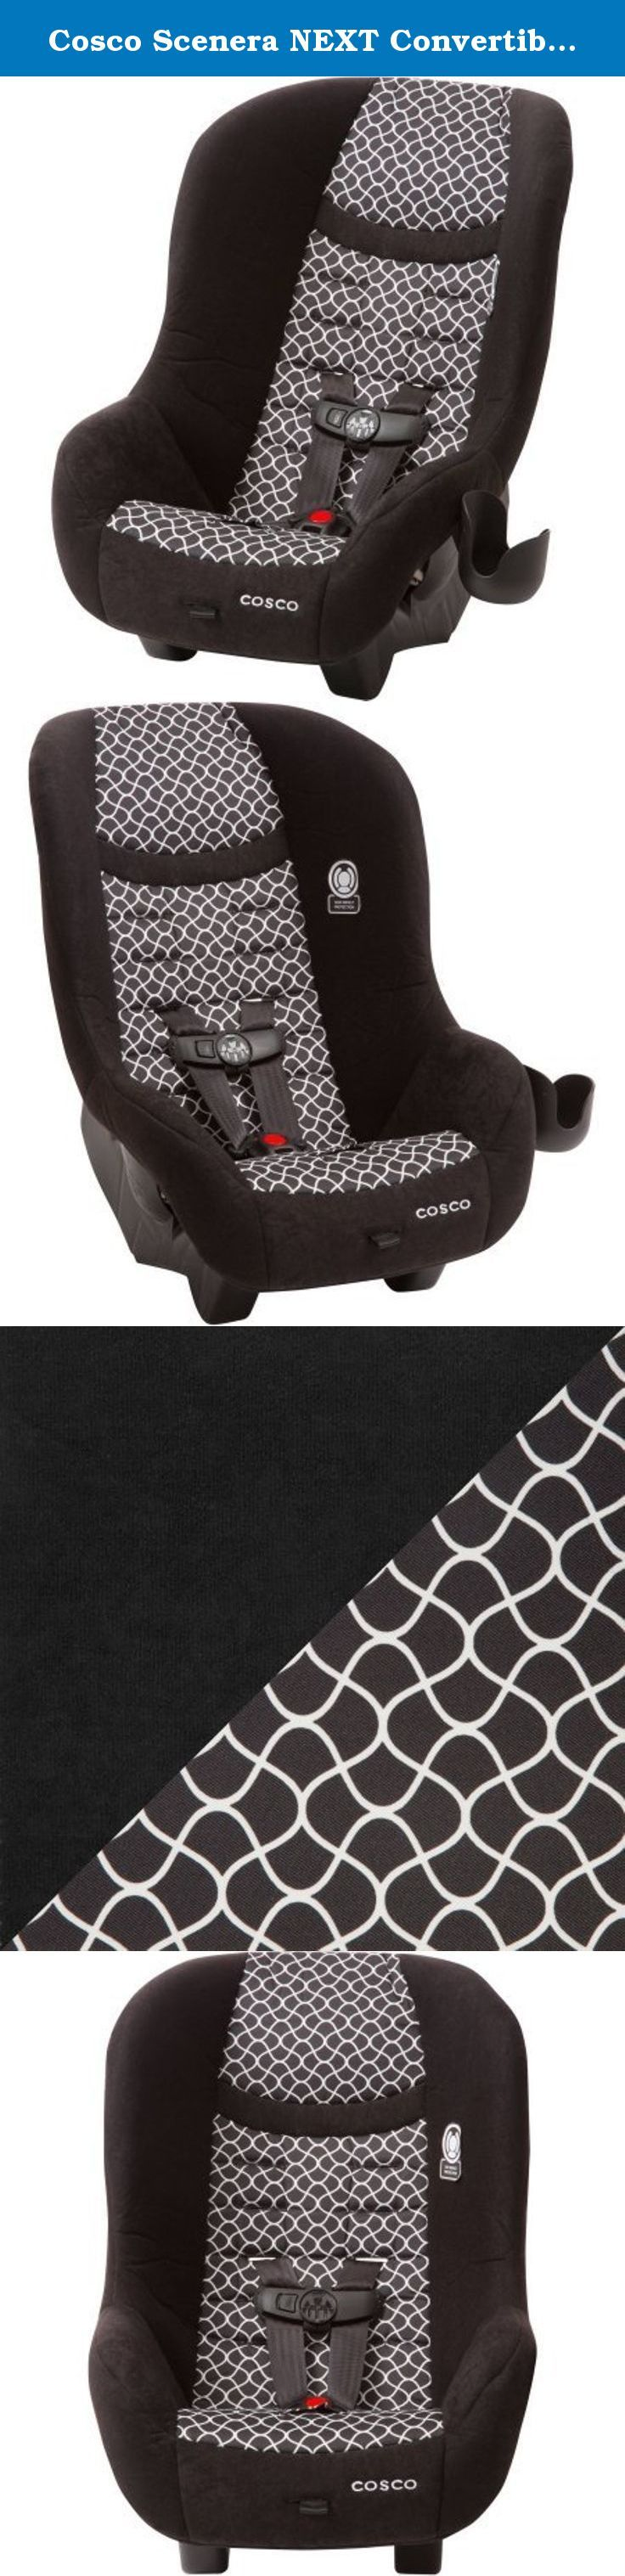 Cosco scenera next convertible car seat otto it keeps kids safer with side impact protection built into the headrest and a five point harness th